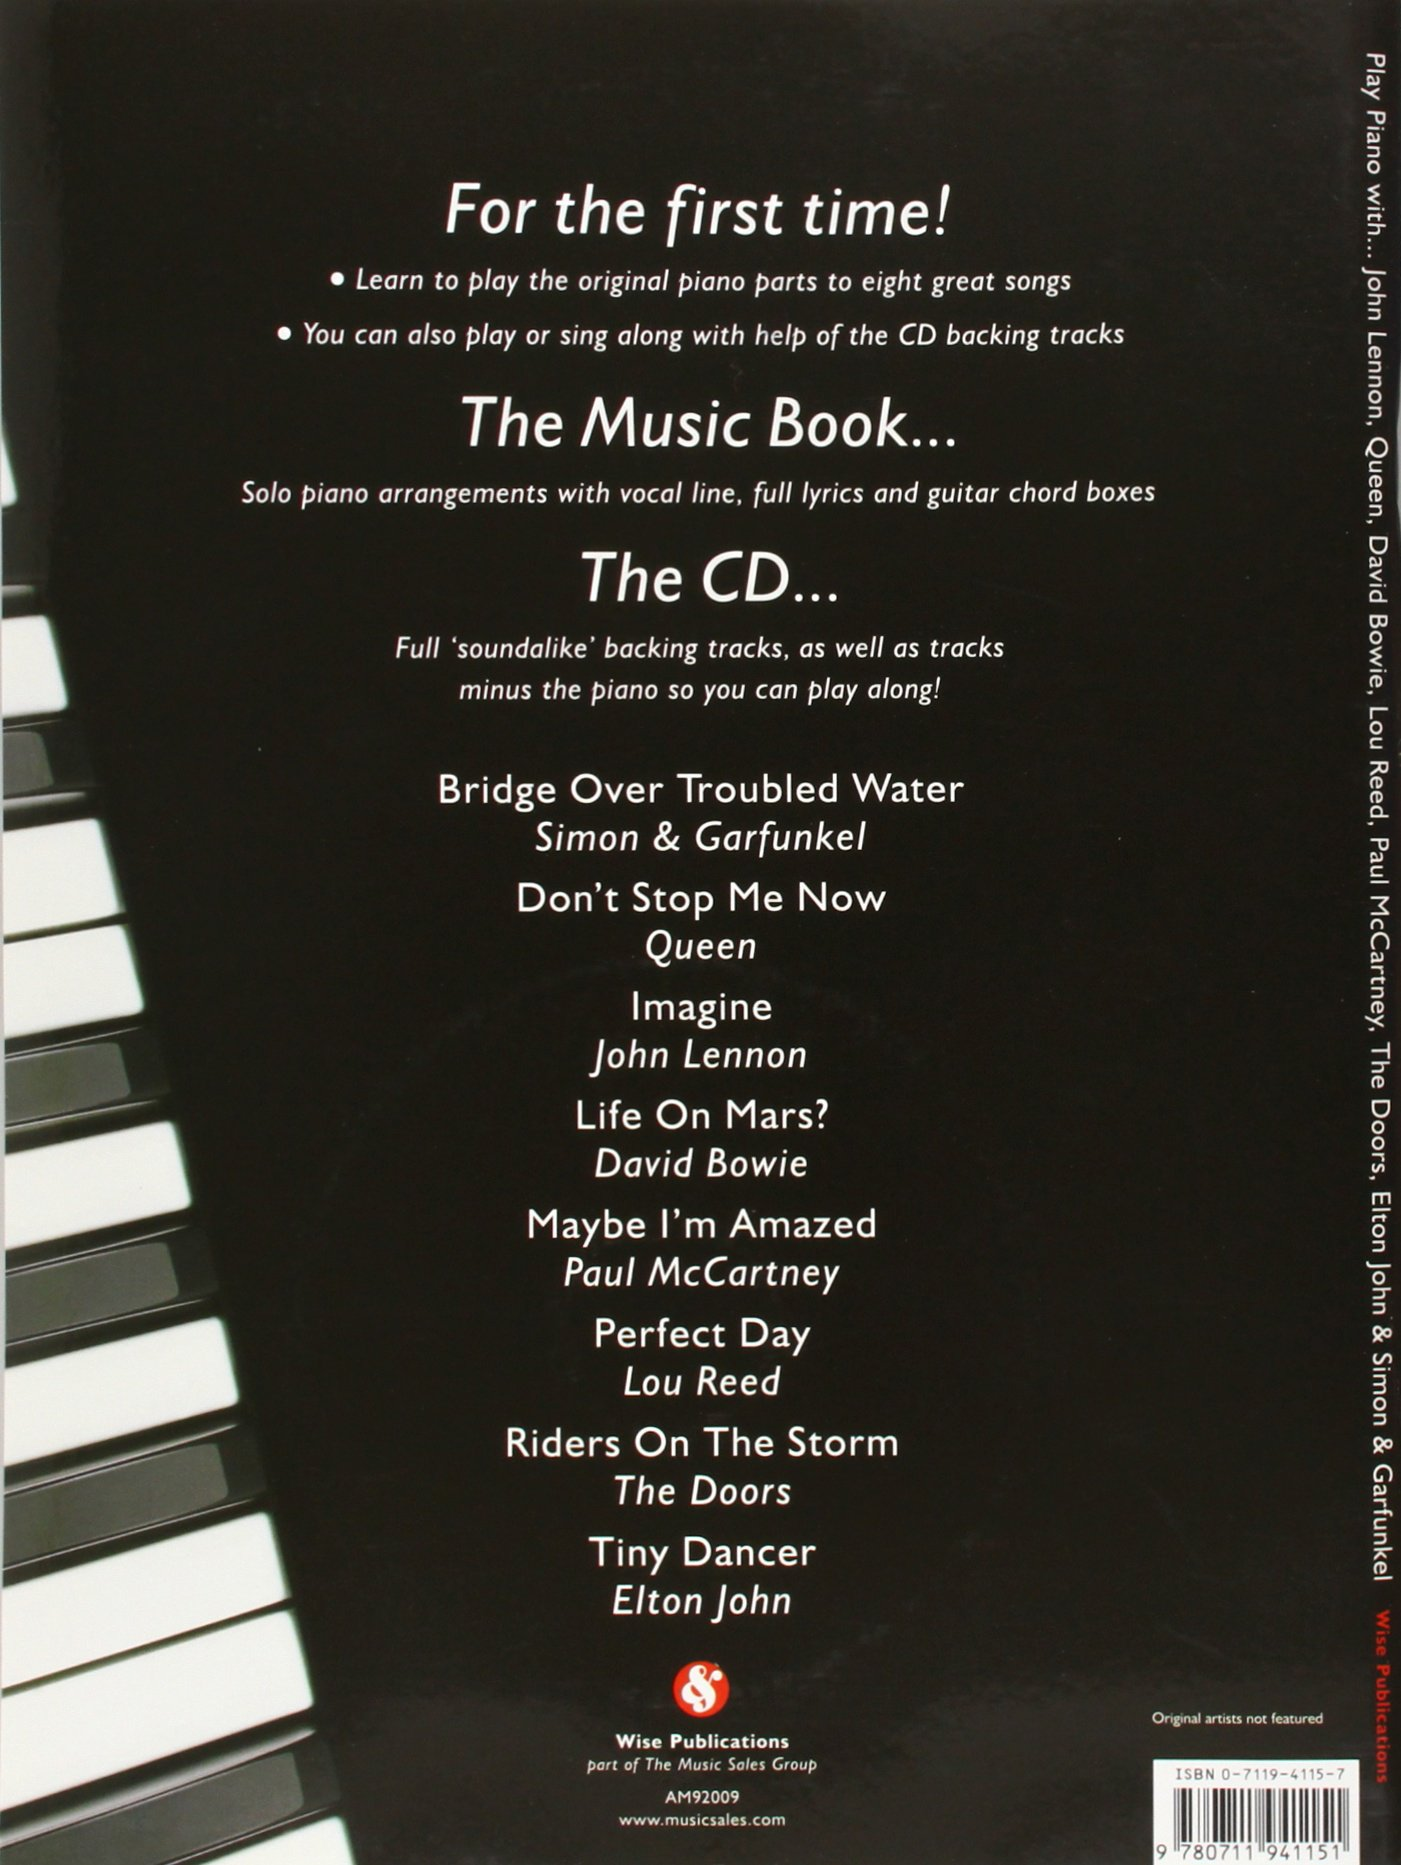 Play Piano With John Lennon Queen David Bowie Lou Reed Paul